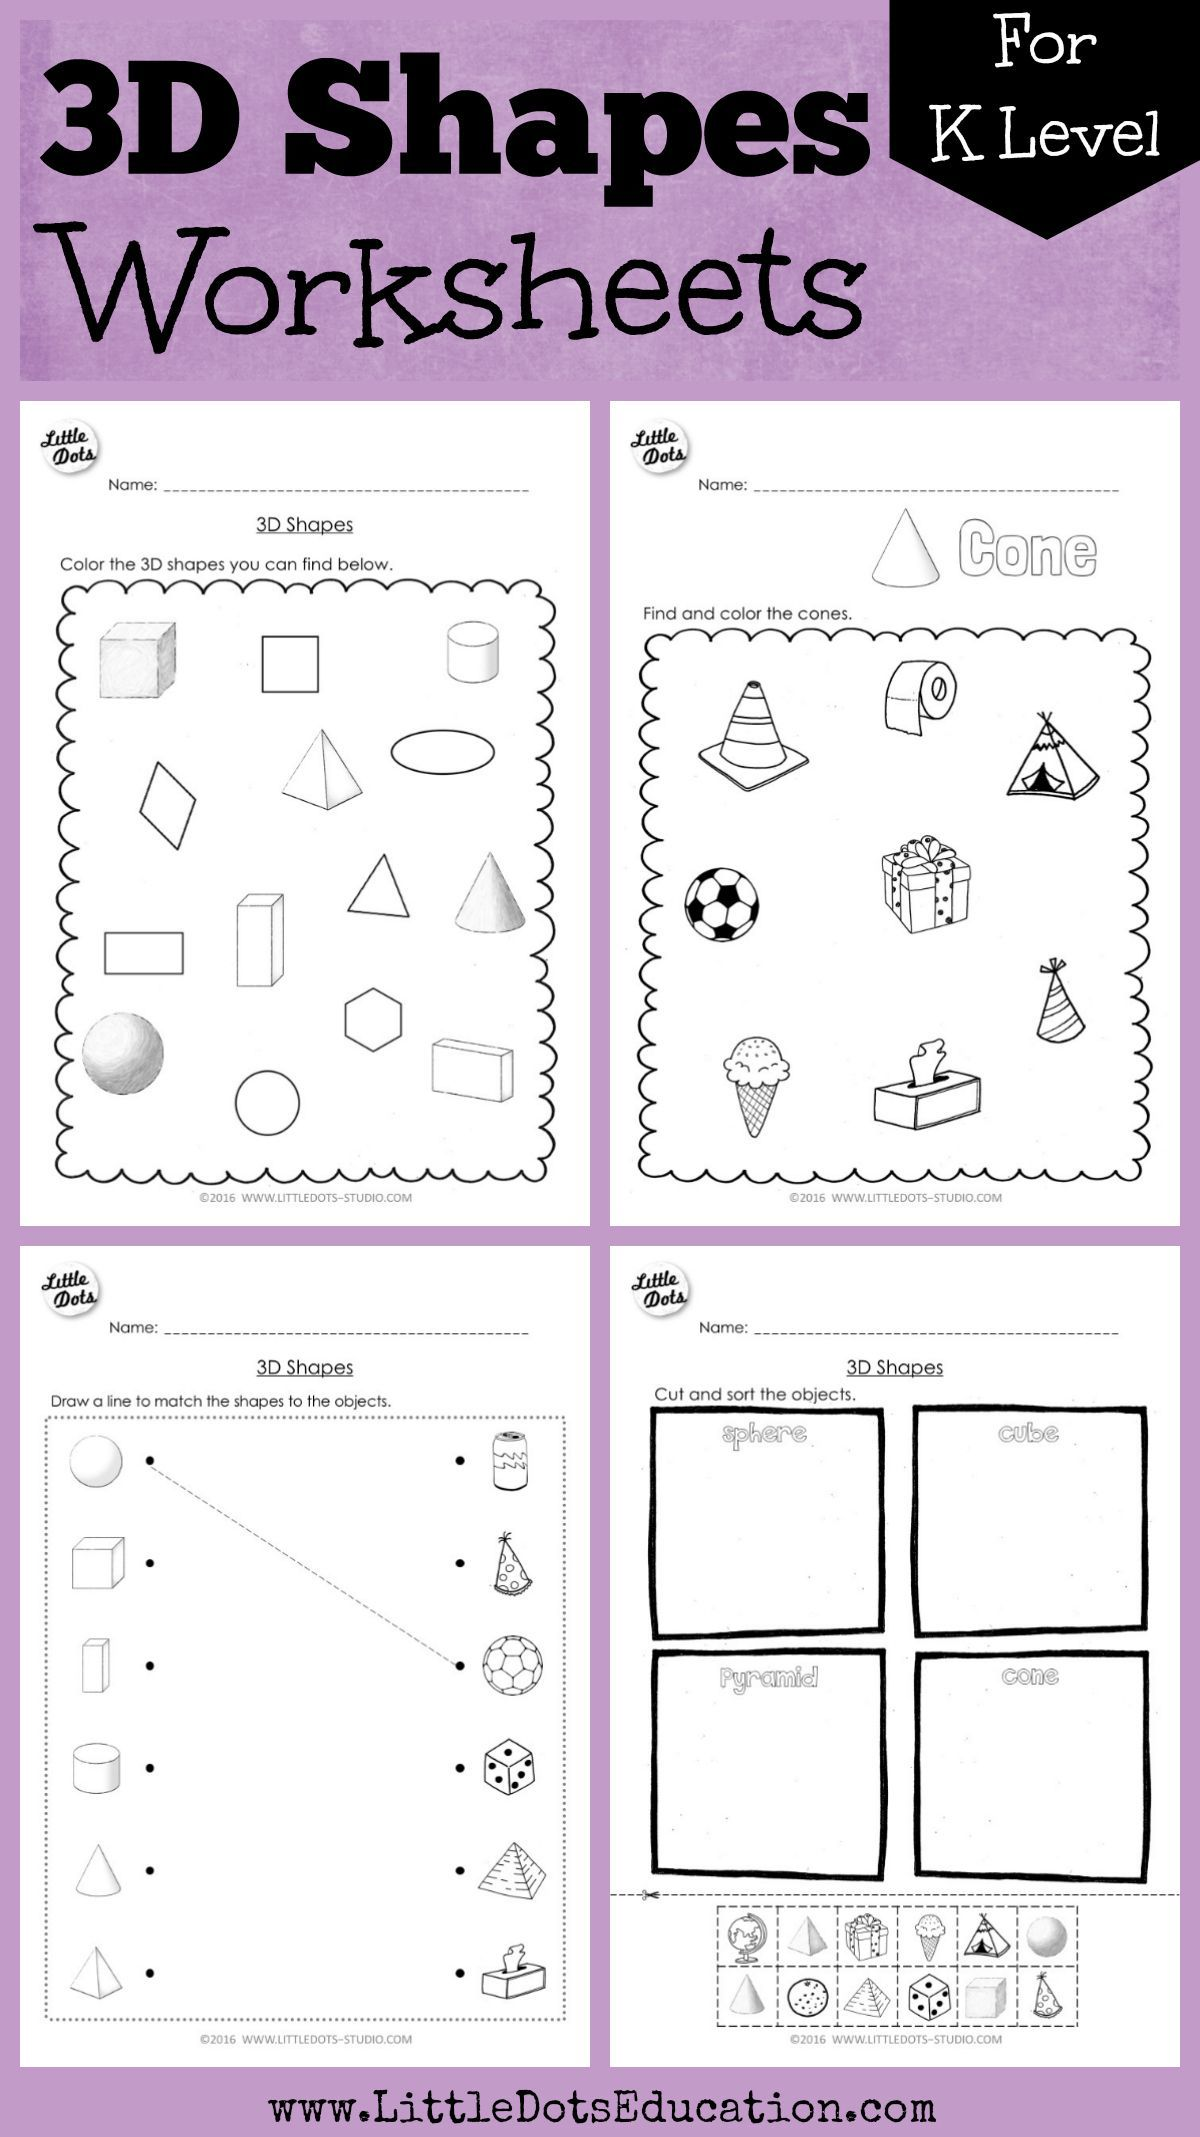 Download 3d Or Solid Shapes Worksheets And Activities On Cube Cylinder Cone Pyramid Cuboid Rectangular Prism And Sphere For Kin Bentuk 3d Aktivitas Bentuk [ 2137 x 1200 Pixel ]